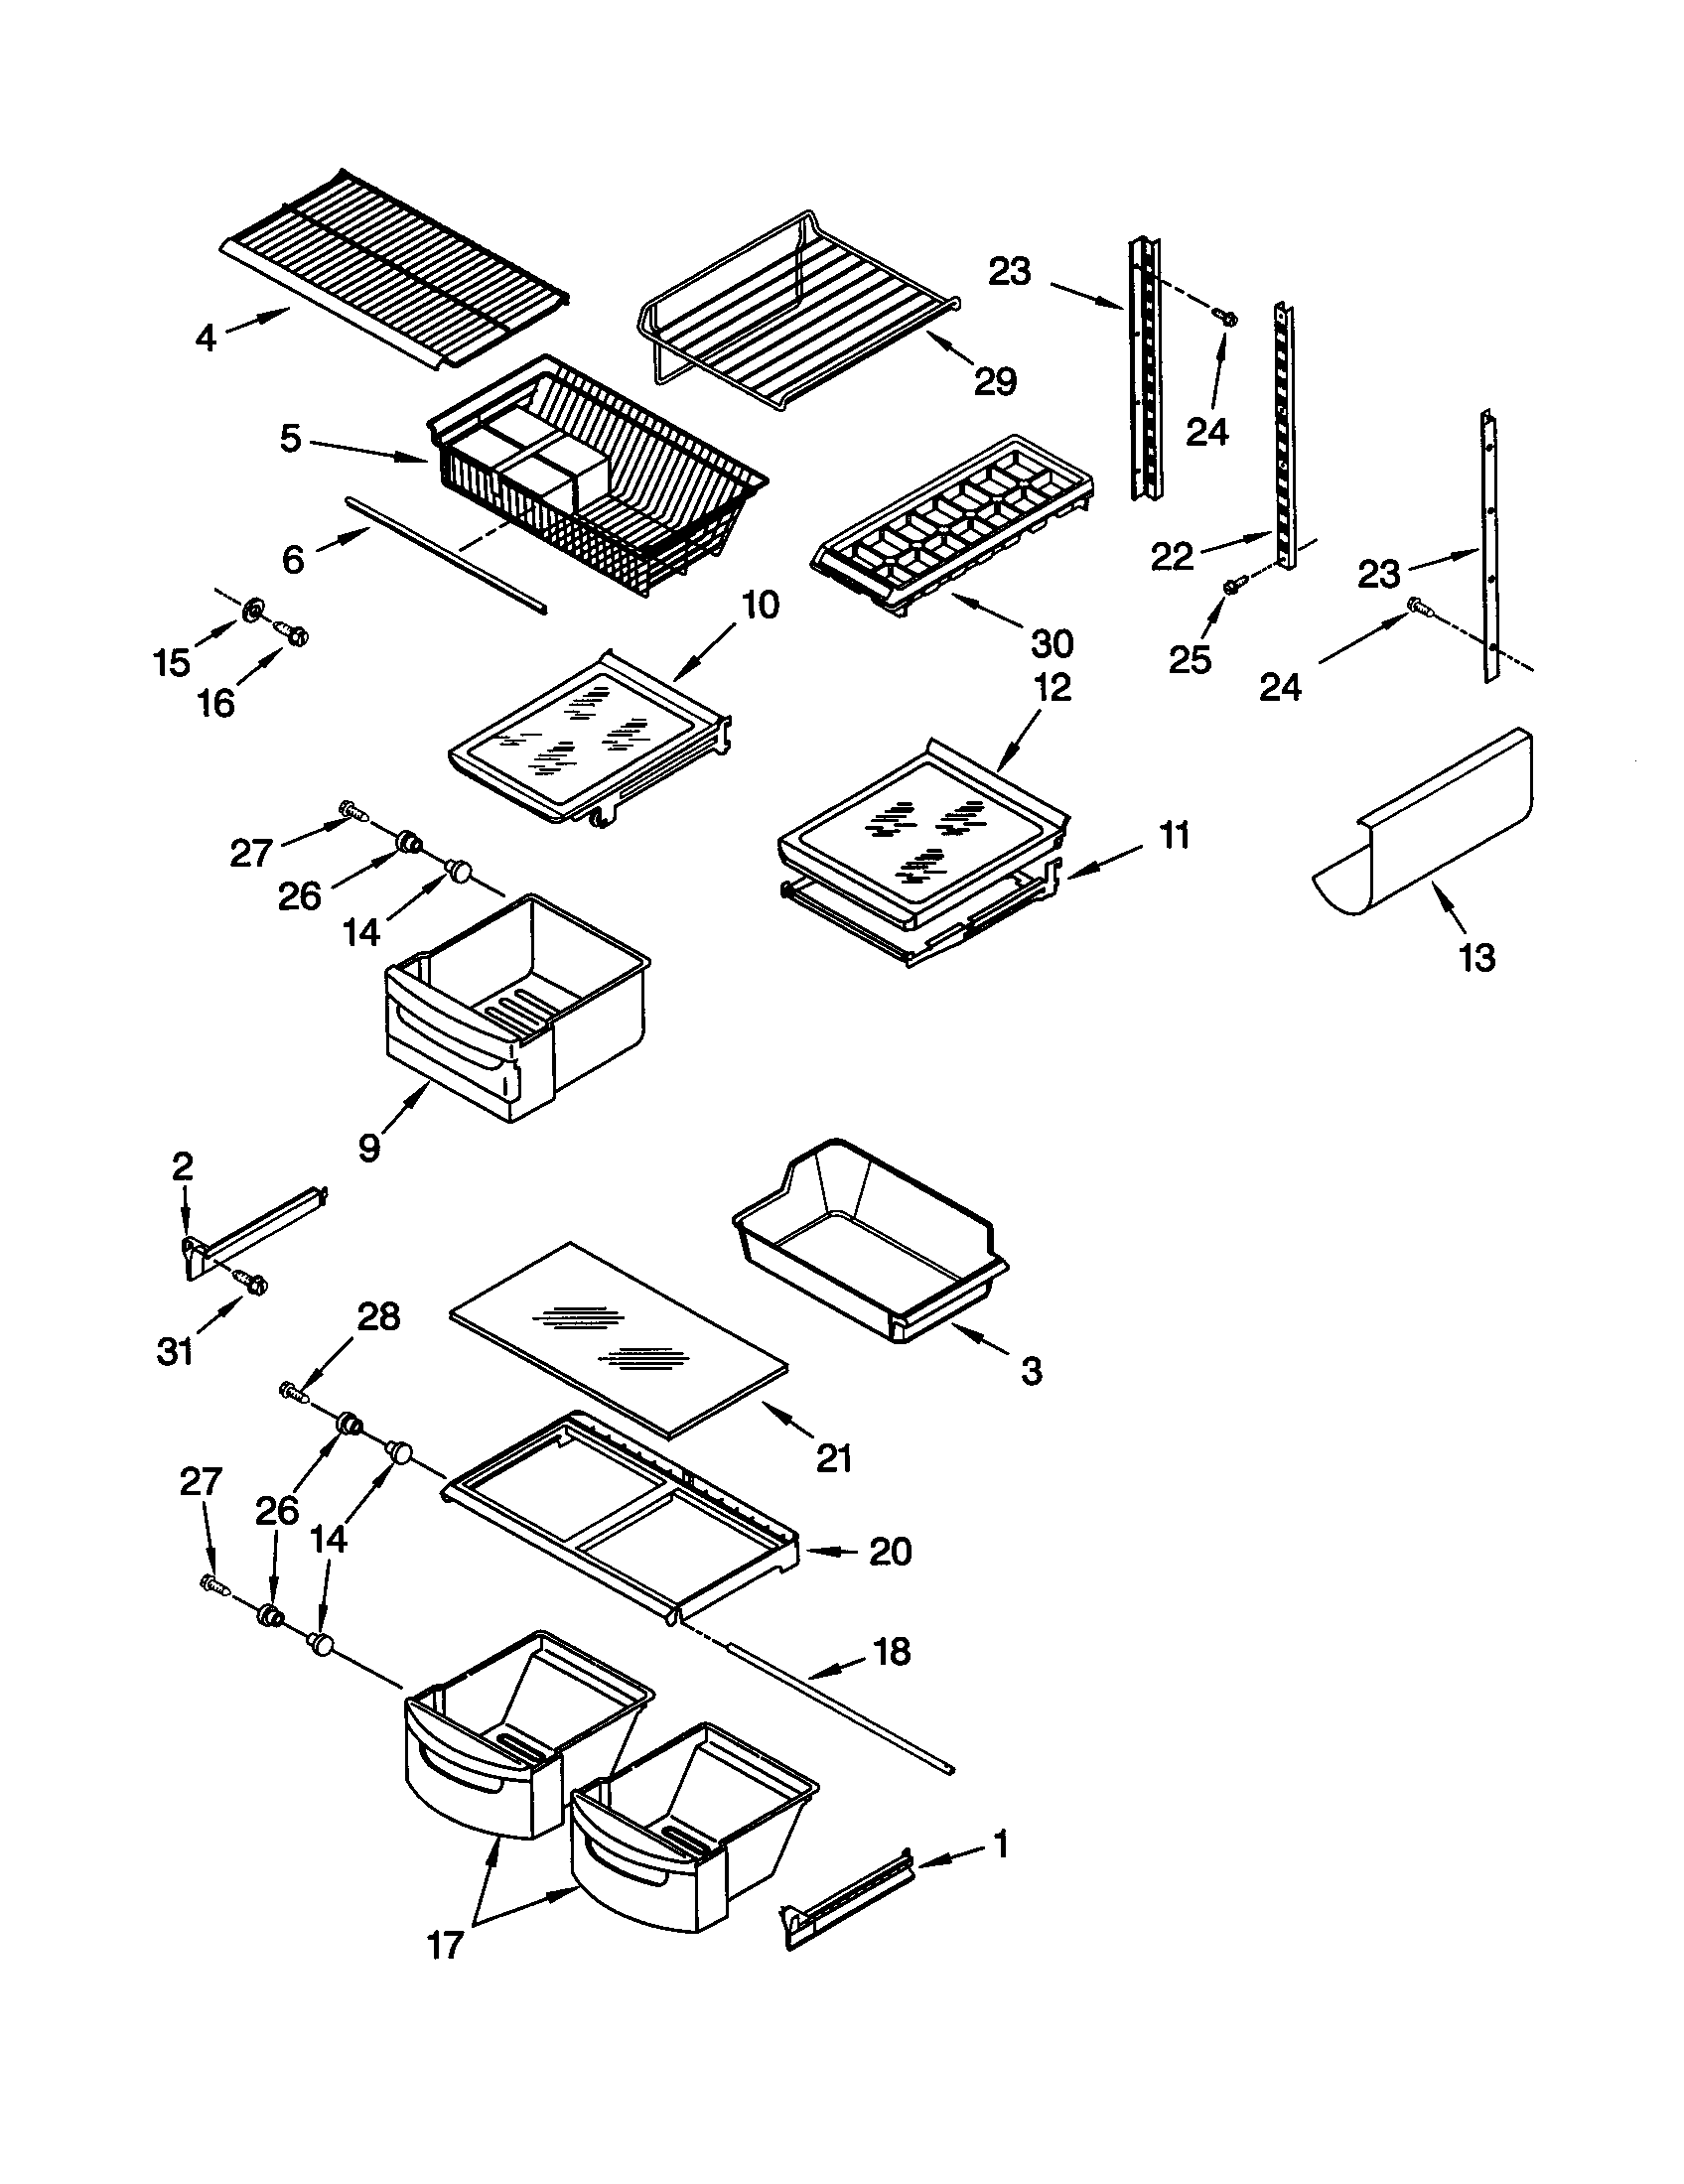 KitchenAid KBRS22KGWH1 shelf diagram